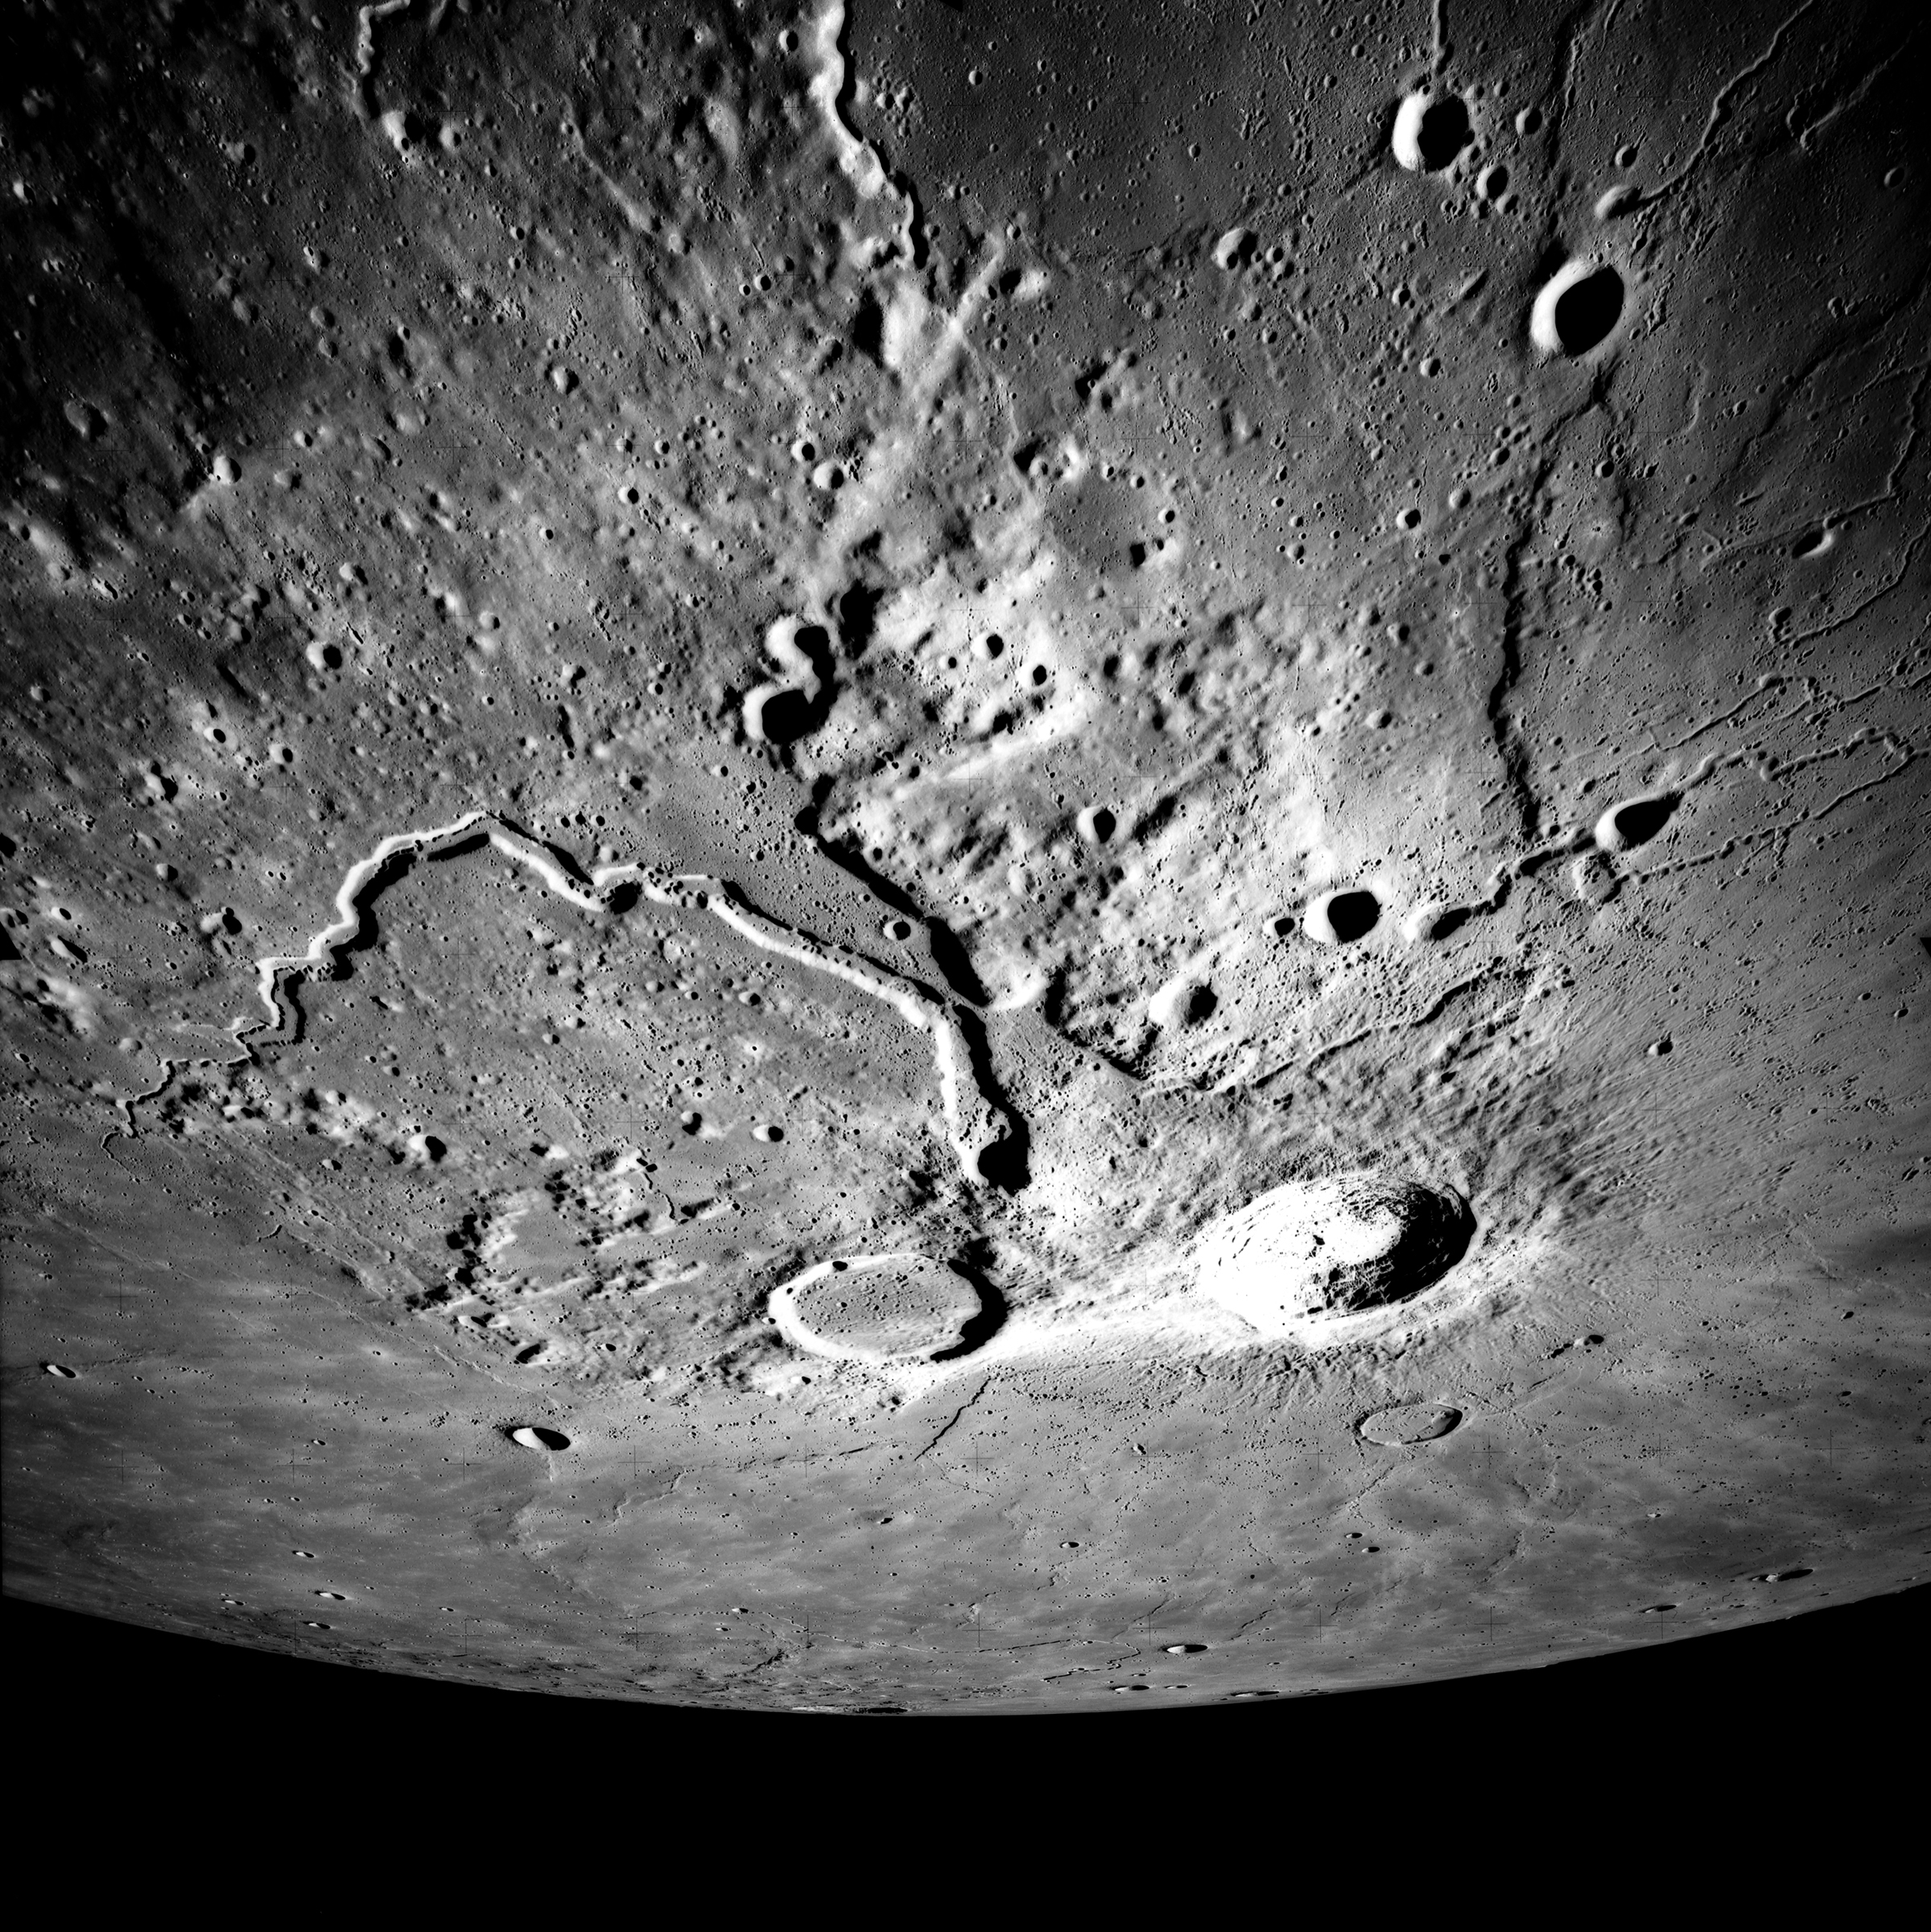 (Left) Apollo 15 Mapping Camera image (A15-M-2610) of the Aristarchus plateau. Note the large, fresh Aristarchus crater, as well as the sinuous rille Vallis Schroteri. The entire uplifted, hummocky plateau has been mantled by pyroclastic materials.  (Right) Topography of the Cobra Head region of the plateau.All of the major volcanic features on the plateau (Cobra Head, Vallis Schroteri, the pyroclastic deposit, and the irregular cones) may have been formed from an eruptive vent located at Cobra Head.